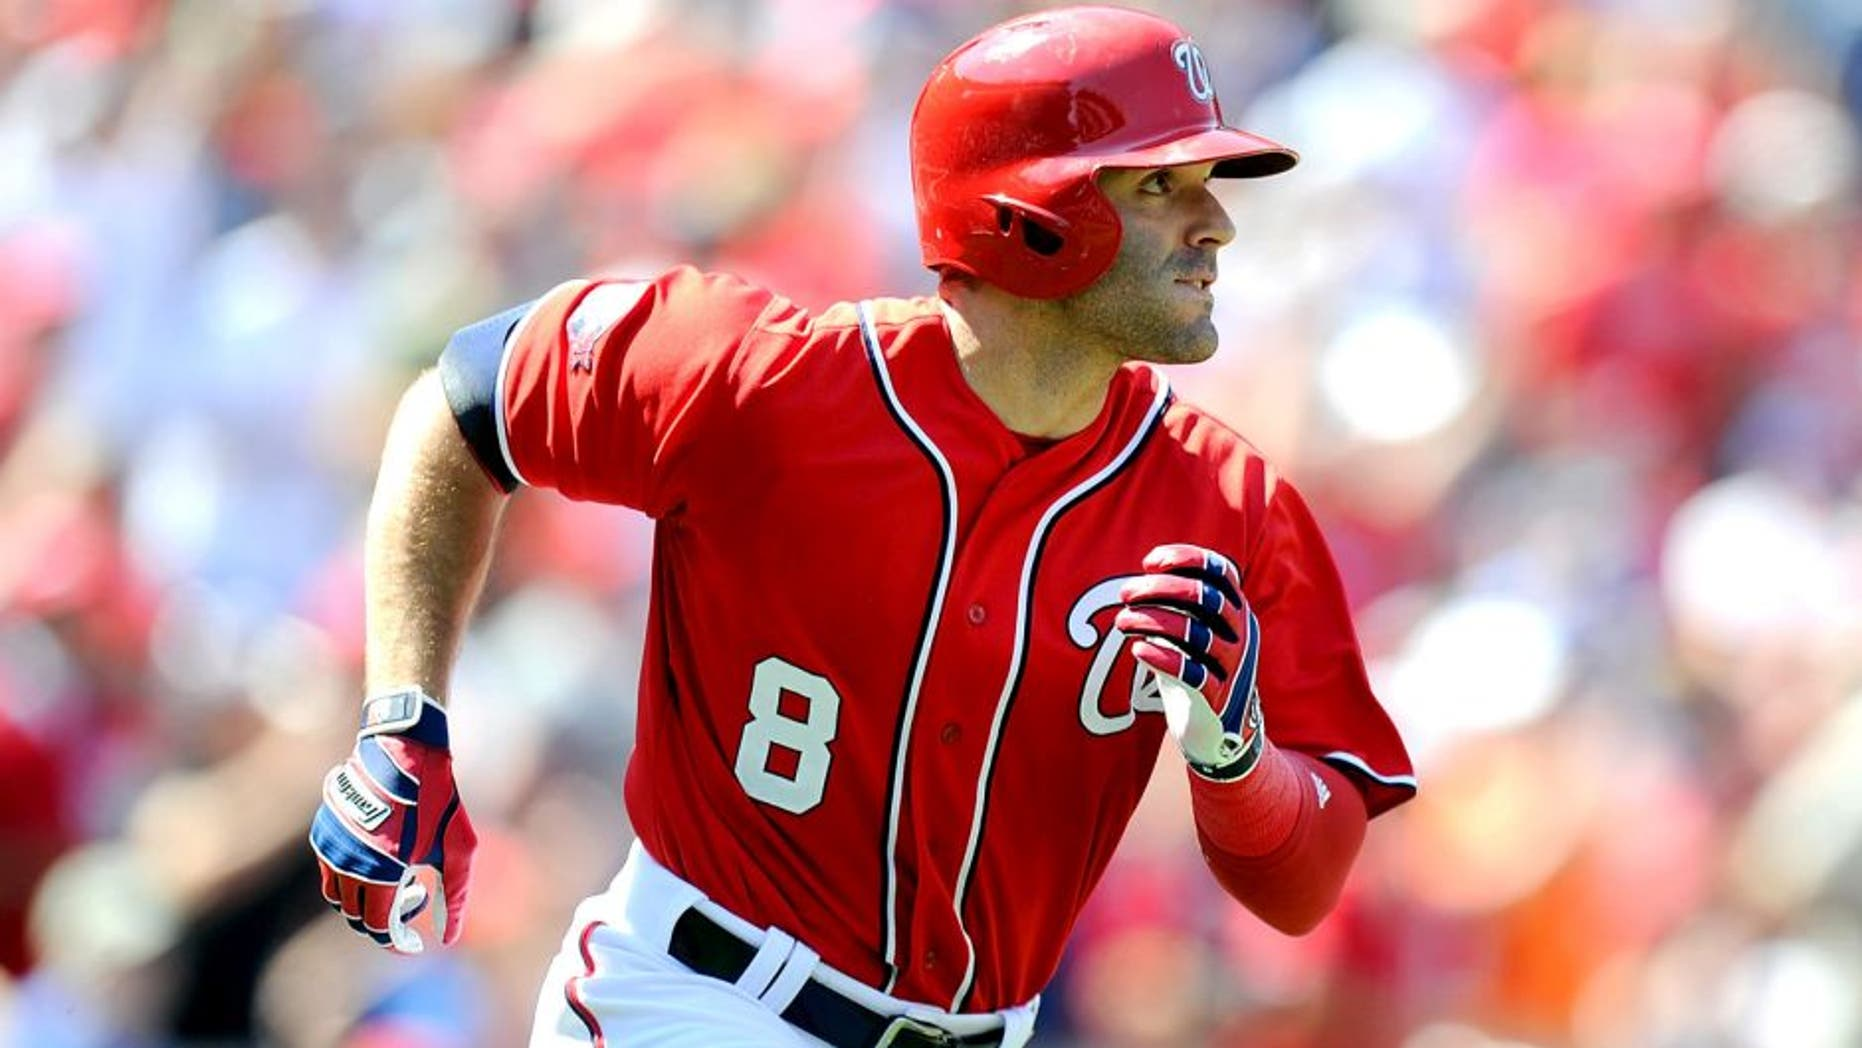 WASHINGTON, DC - AUGUST 23: Danny Espinosa #8 of the Washington Nationals watches his three-run double in the third inning against the Milwaukee Brewers at Nationals Park on August 23, 2015 in Washington, DC. (Photo by Greg Fiume/Getty Images)